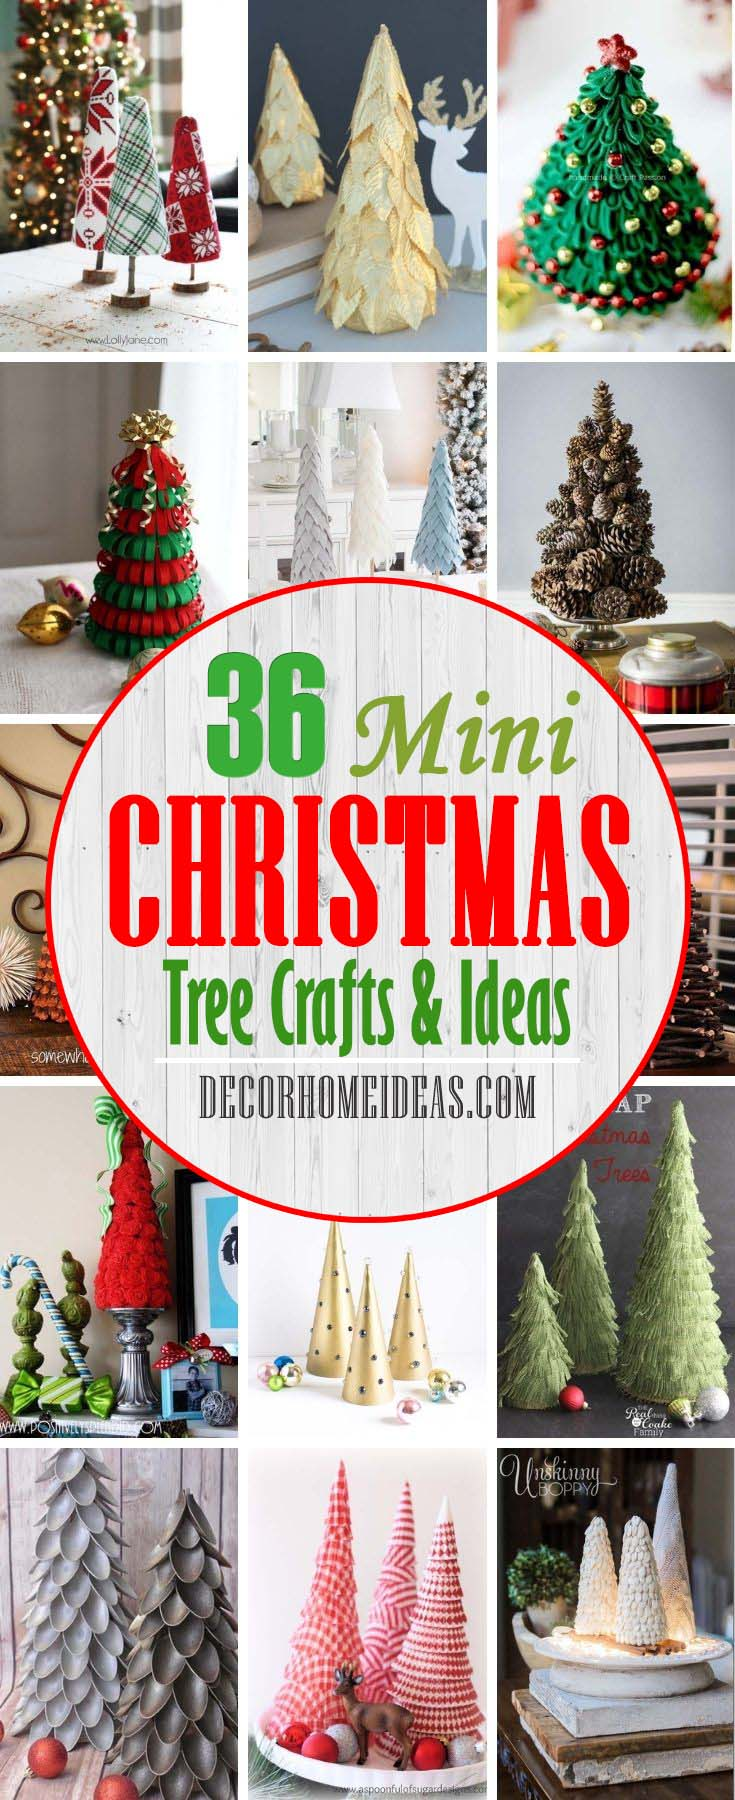 Best DIY Mini Christmas Tree Crafts. Add a little holiday cheer to your home with these festive tabletop DIY Christmas tree decorations! These Christmas tree crafts are fun, easy & kid-friendly #decorhomeideas